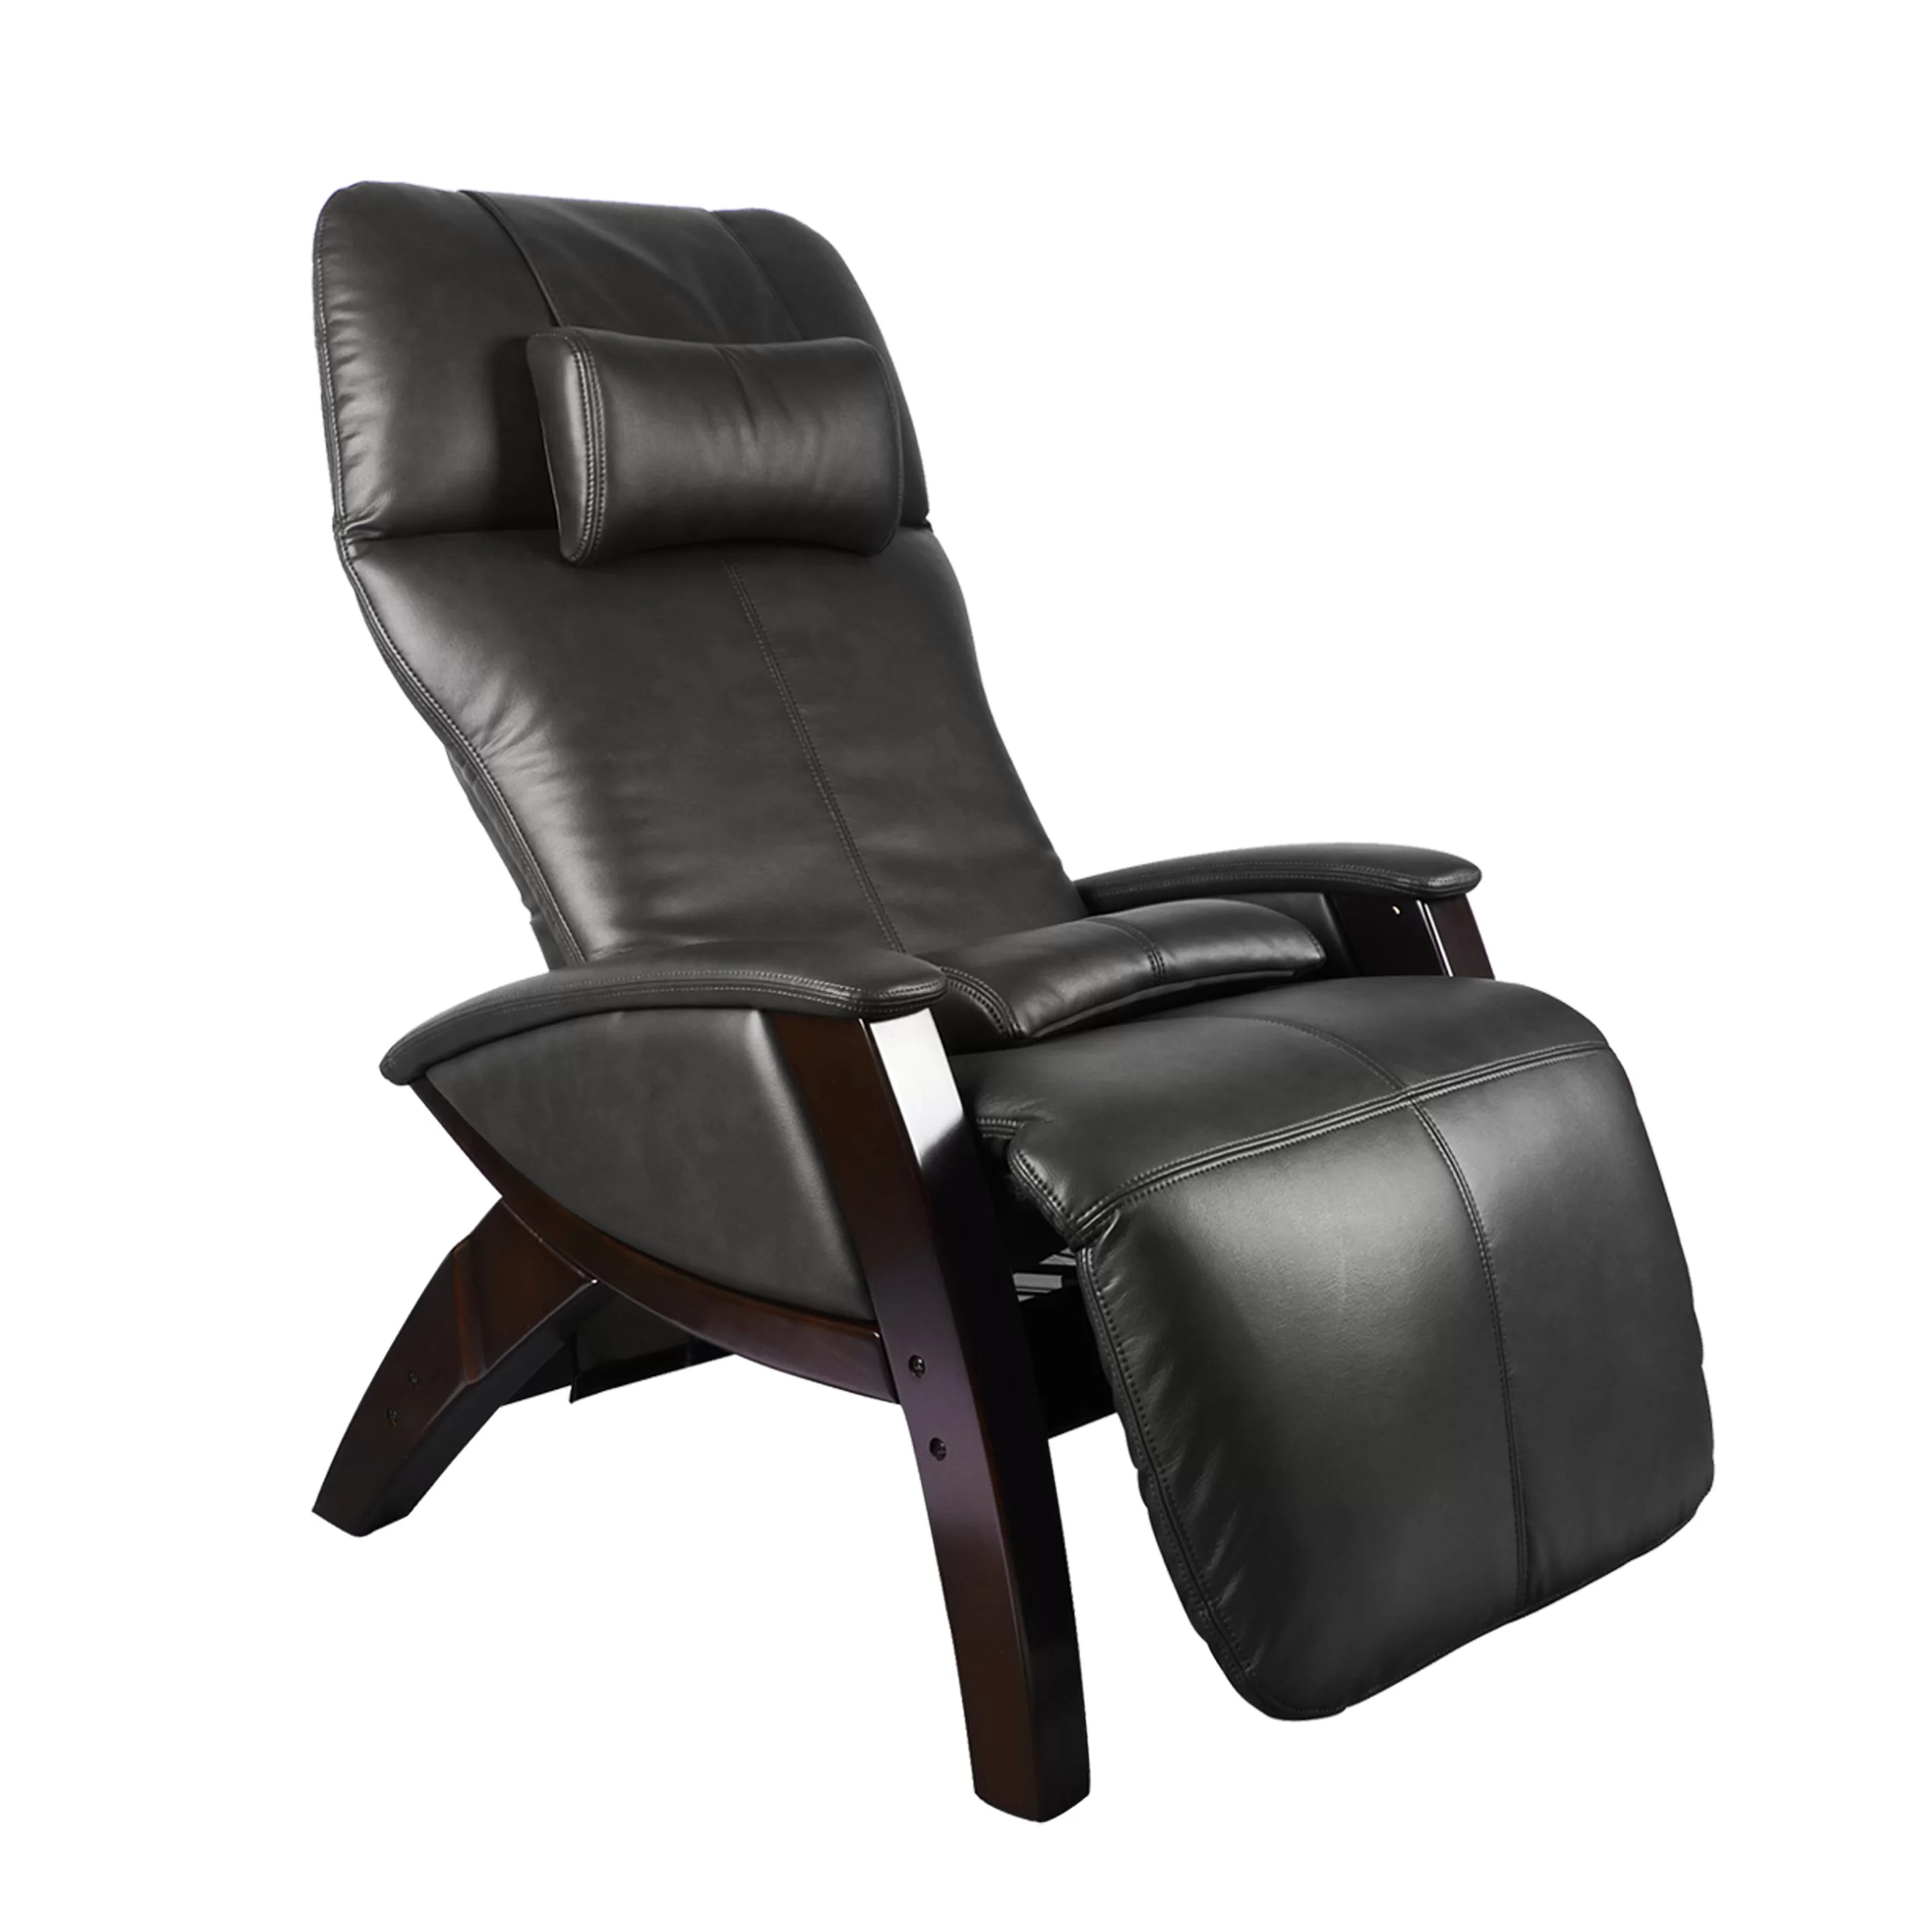 cozzia massage chair reviews bistro dining table and 4 chairs svago zg zero gravity wayfair